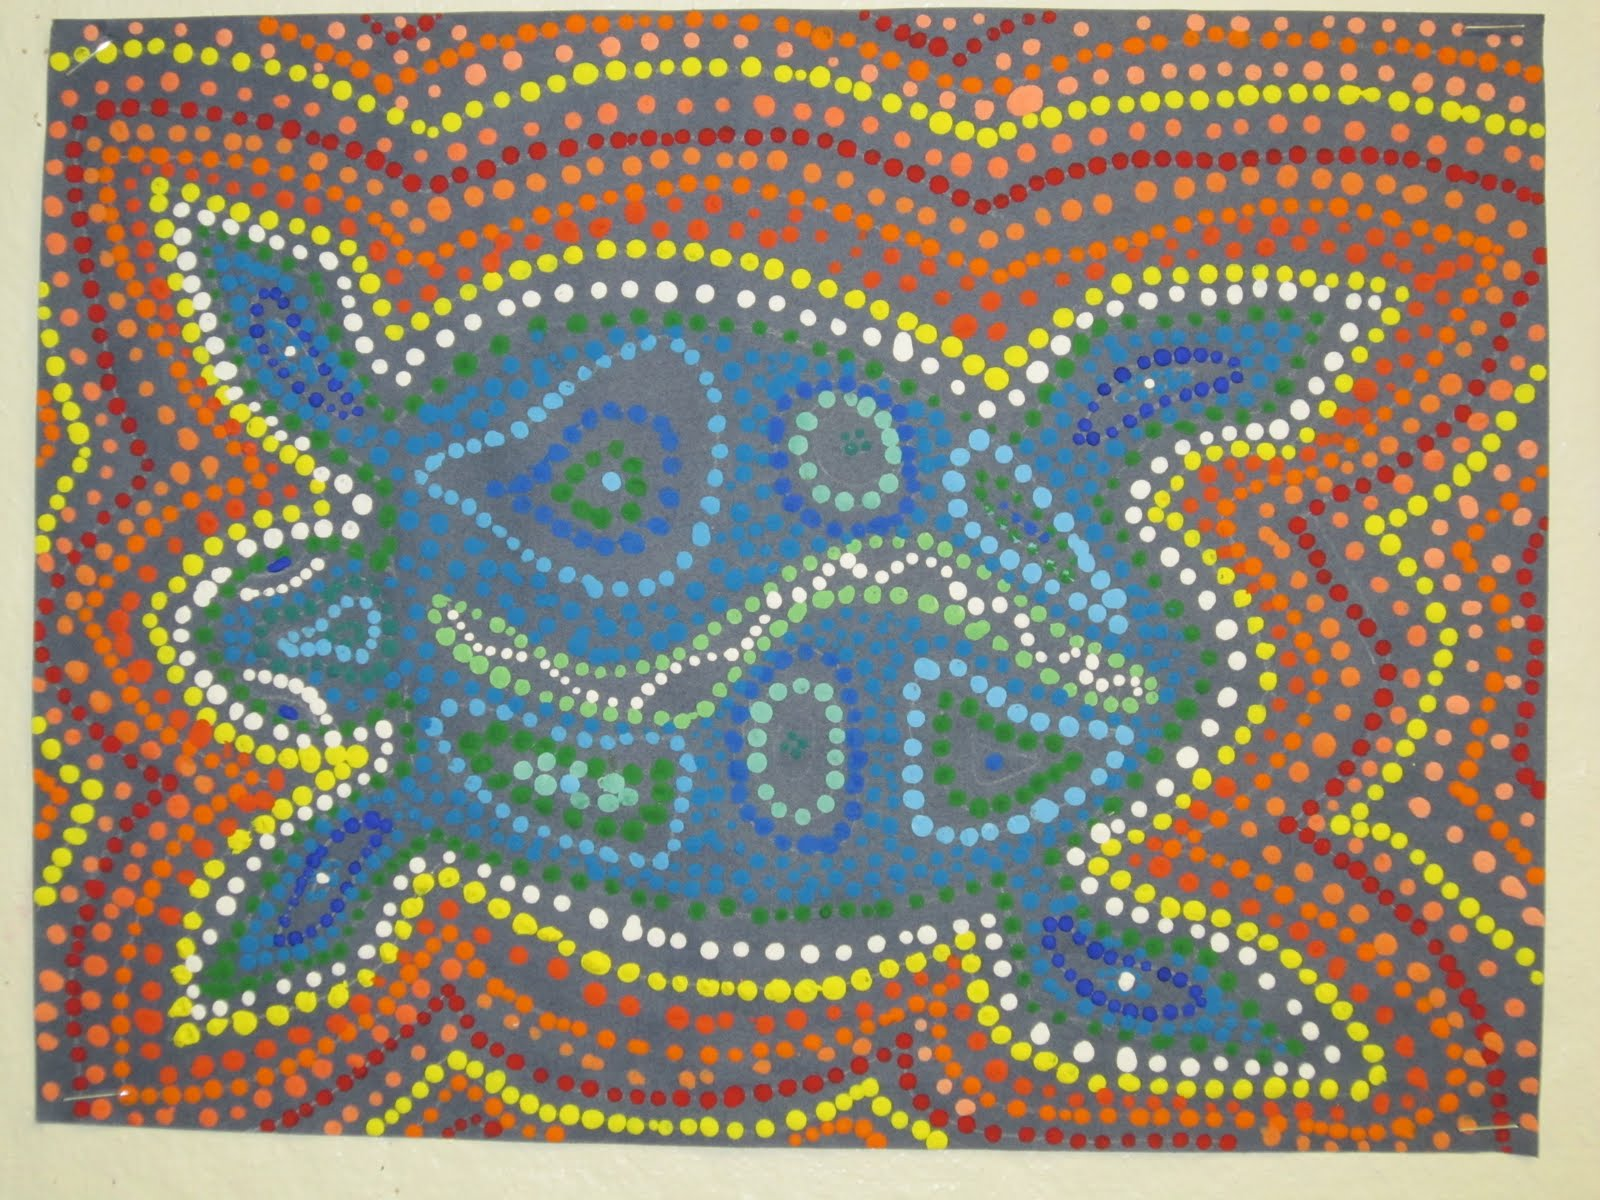 aboriginal dreaming essay Aboriginal land rights within australia essay 1885 words | 8 pages case by case indigenous australians begin to gain access to the land that was taken from them.